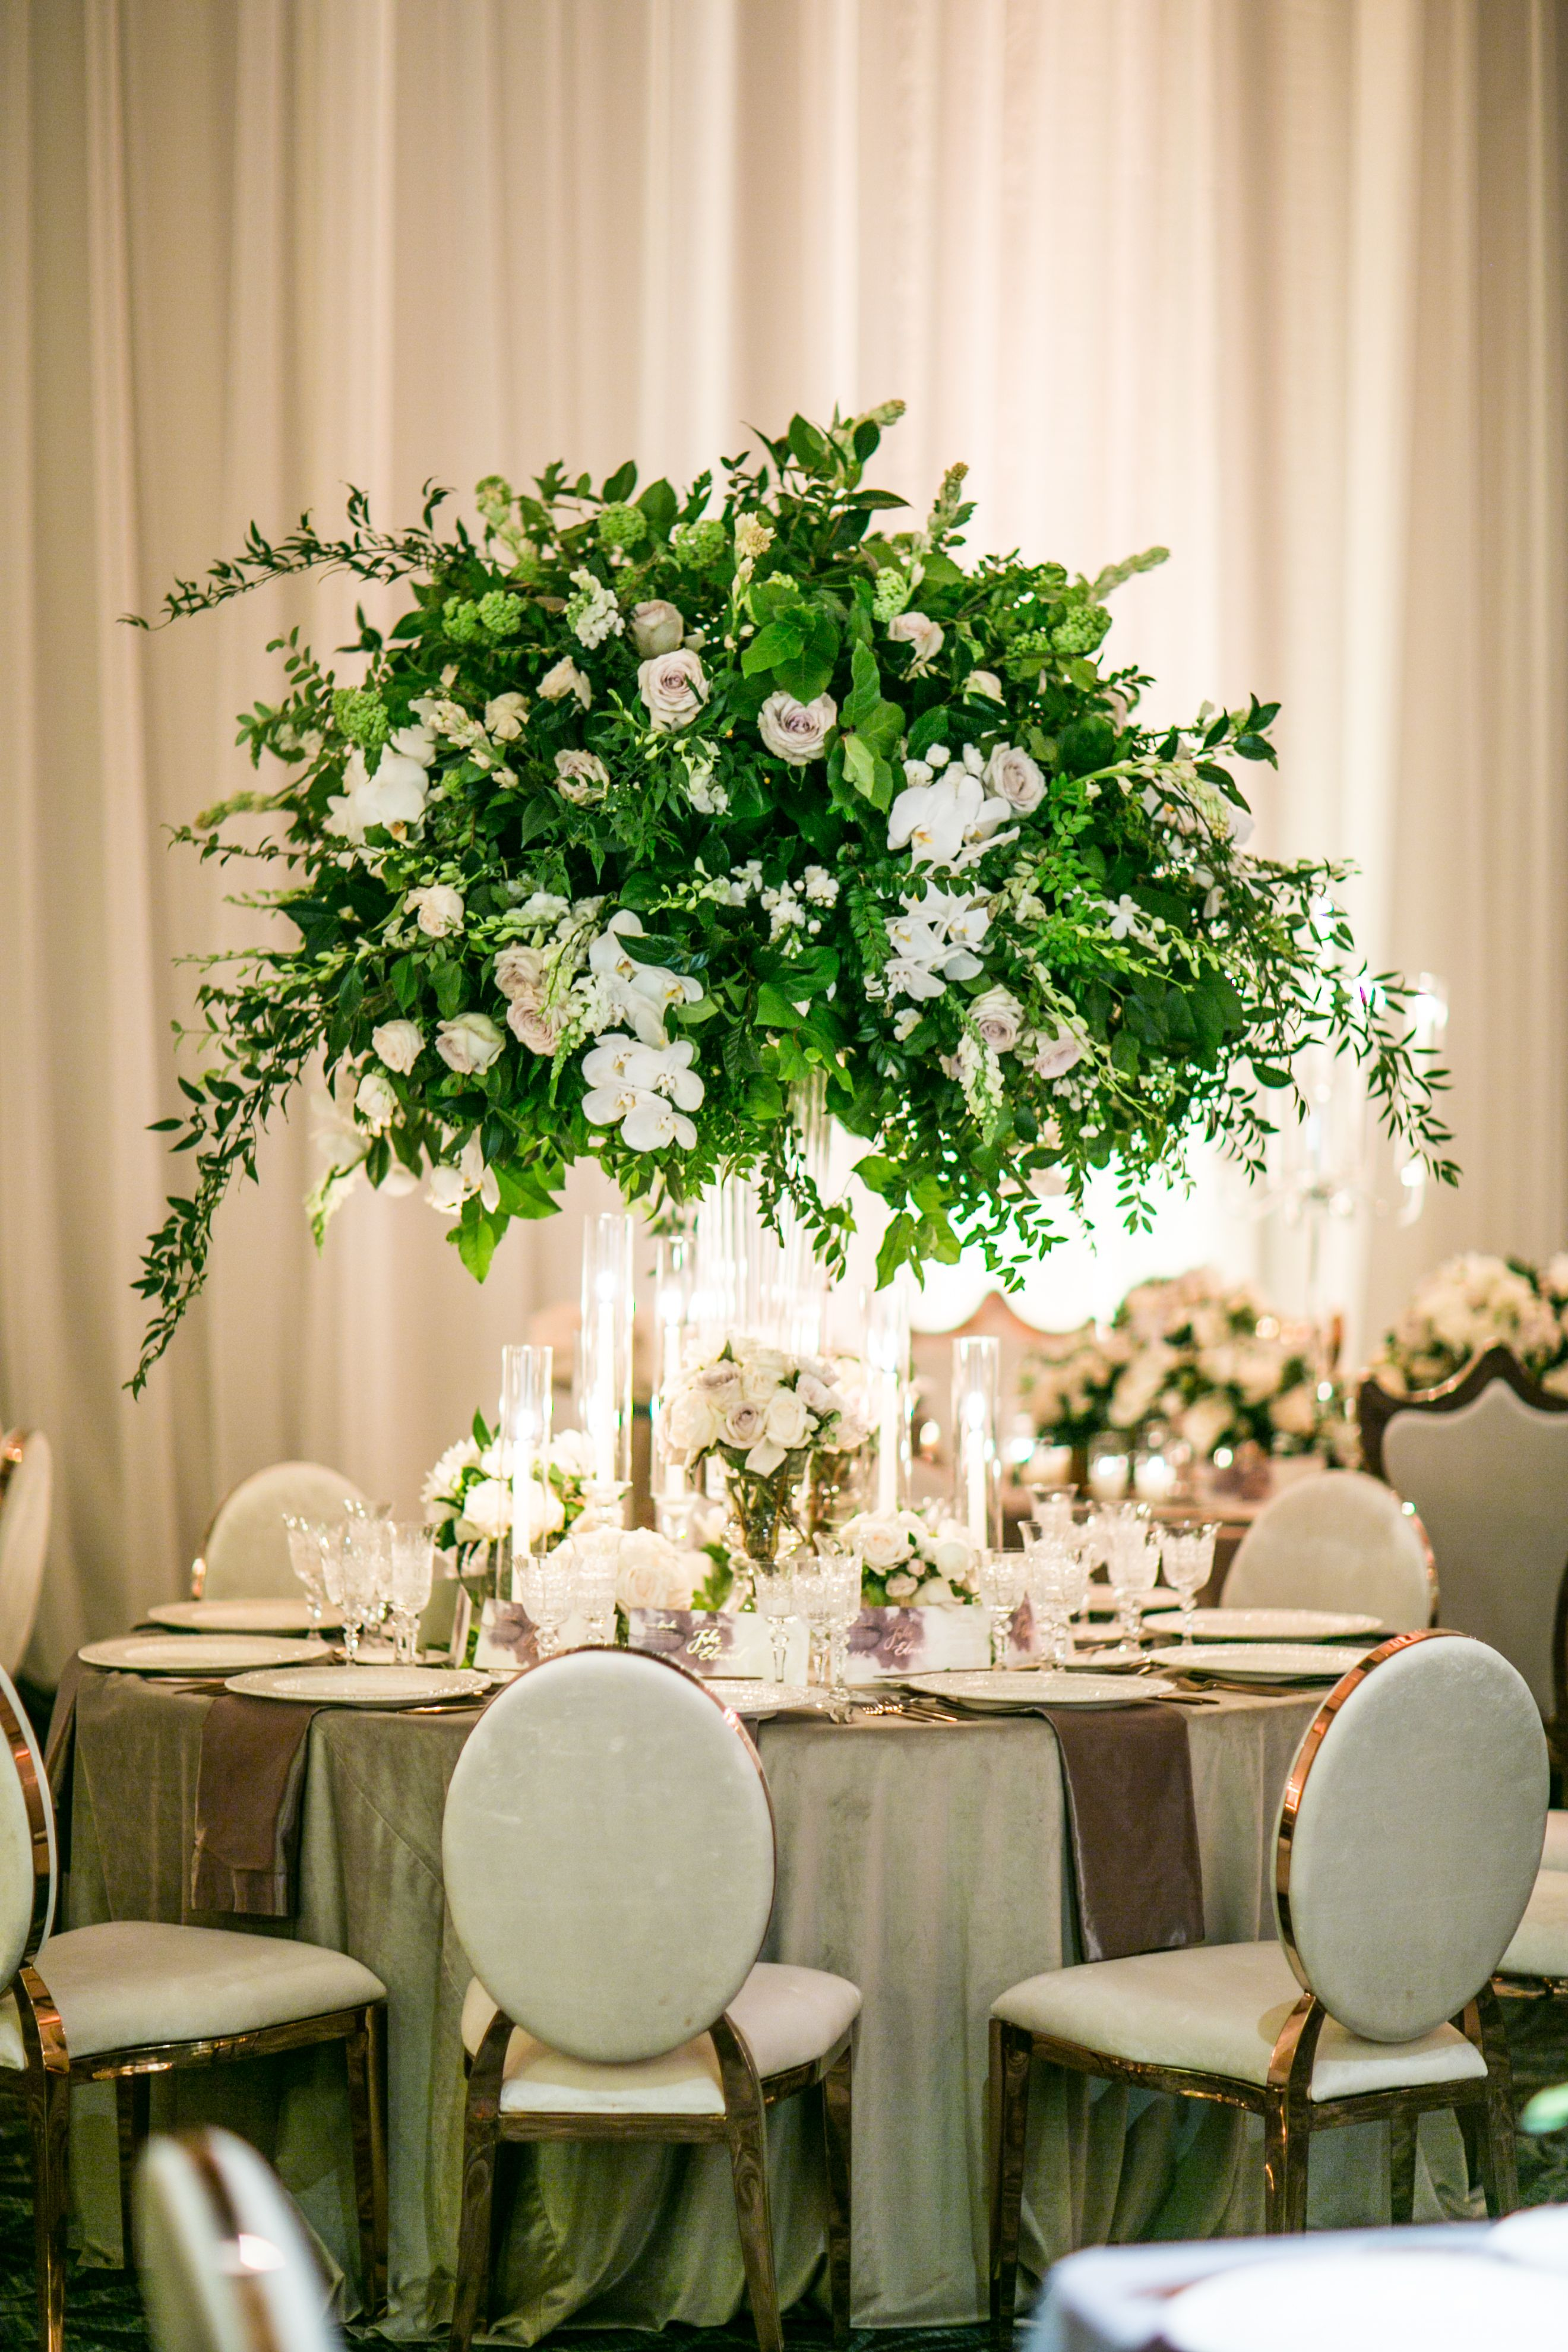 Tall Centerpieces Of Lush Greenery And White Florals Surrounded With Candles And Low Florals By Layers Greenery Centerpiece Large Centerpiece Tall Centerpieces